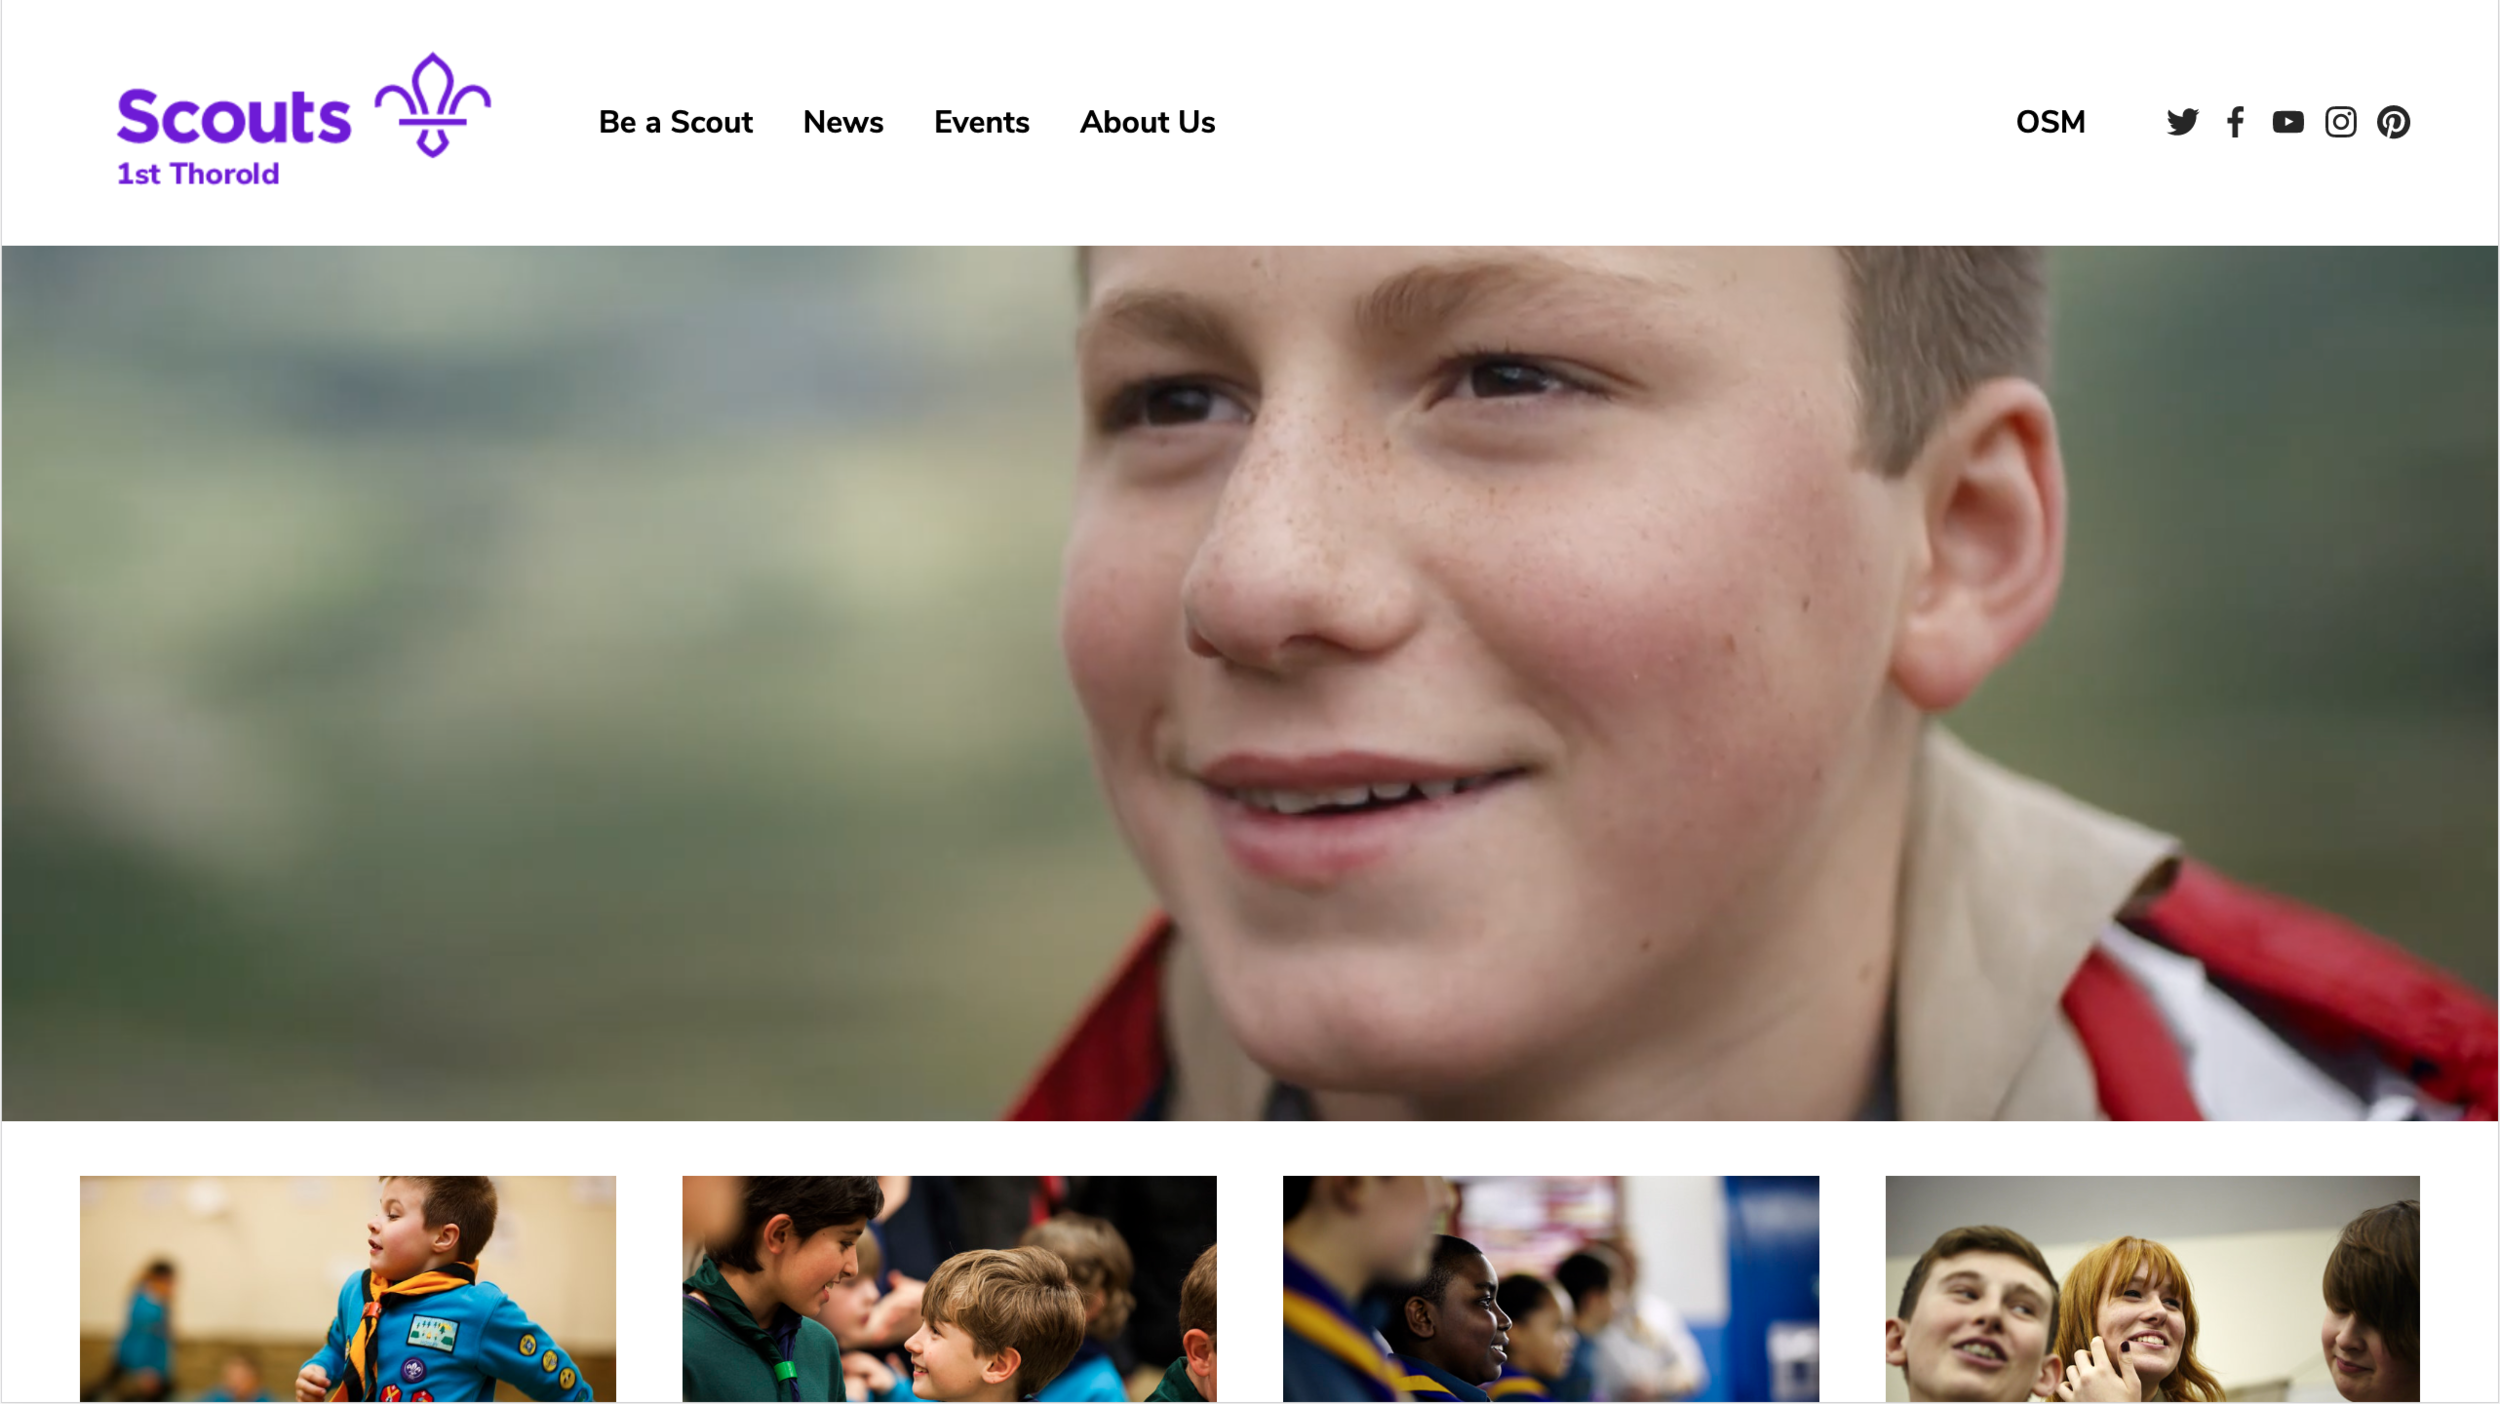 Demonstration - Preview a Scout Group Website